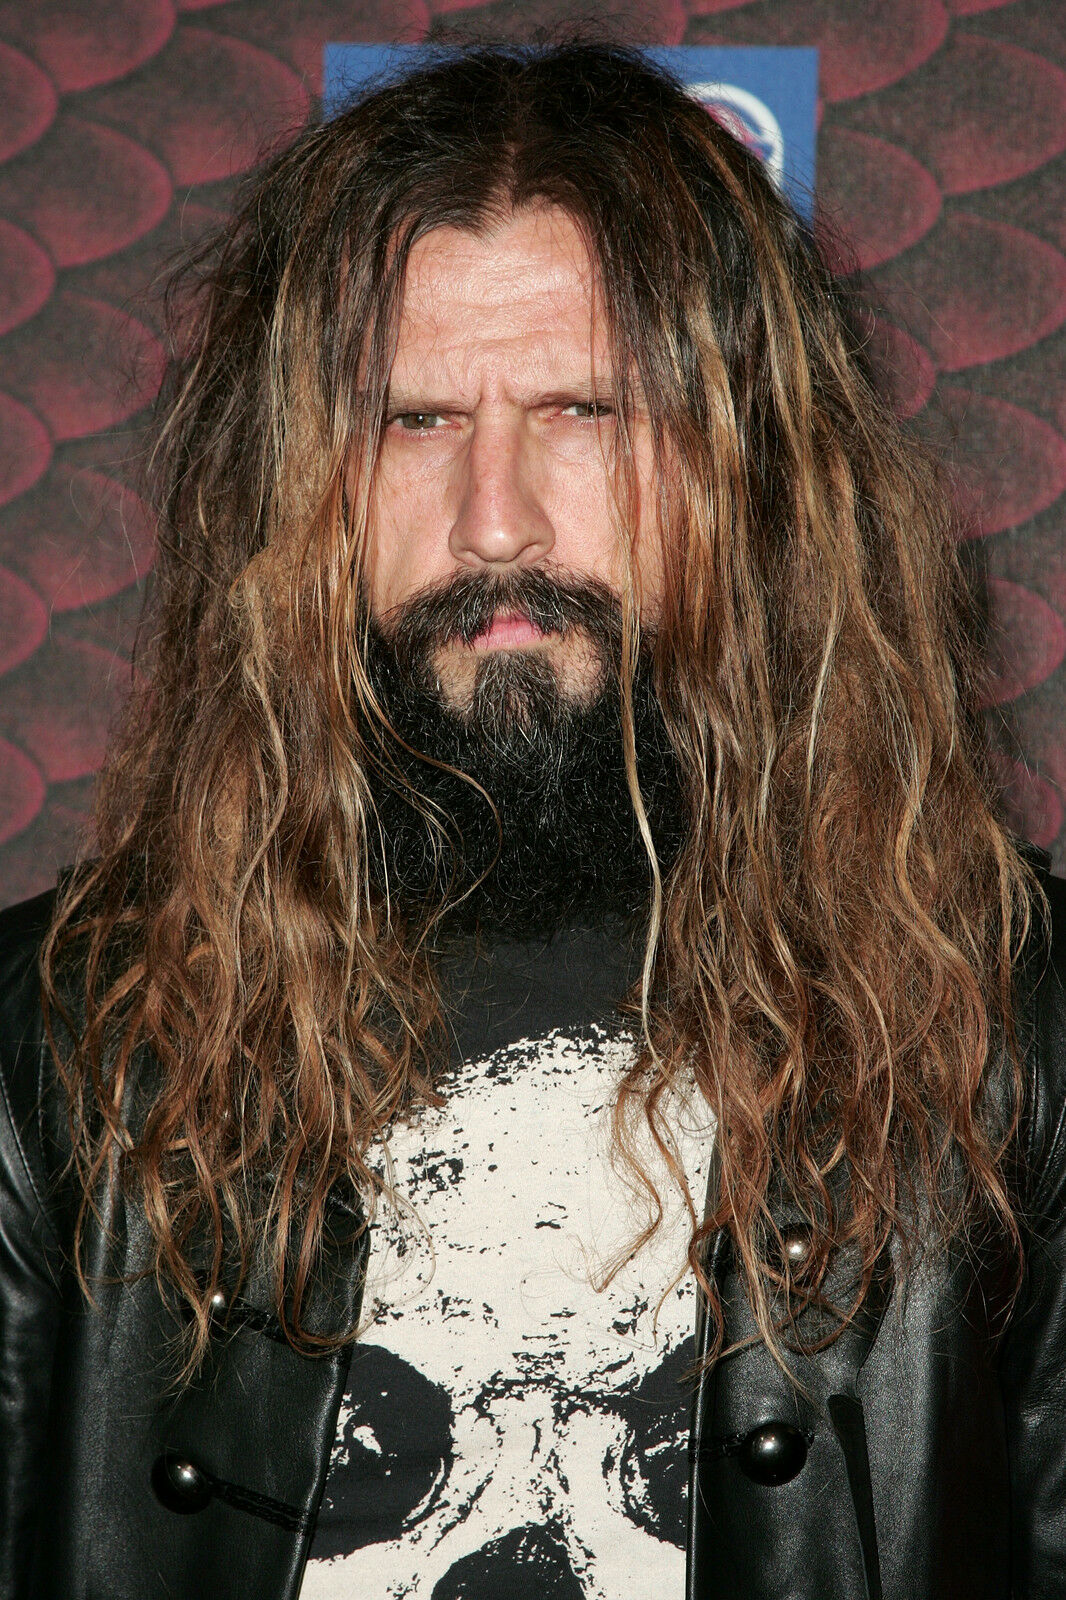 What is rob zombie's next movie